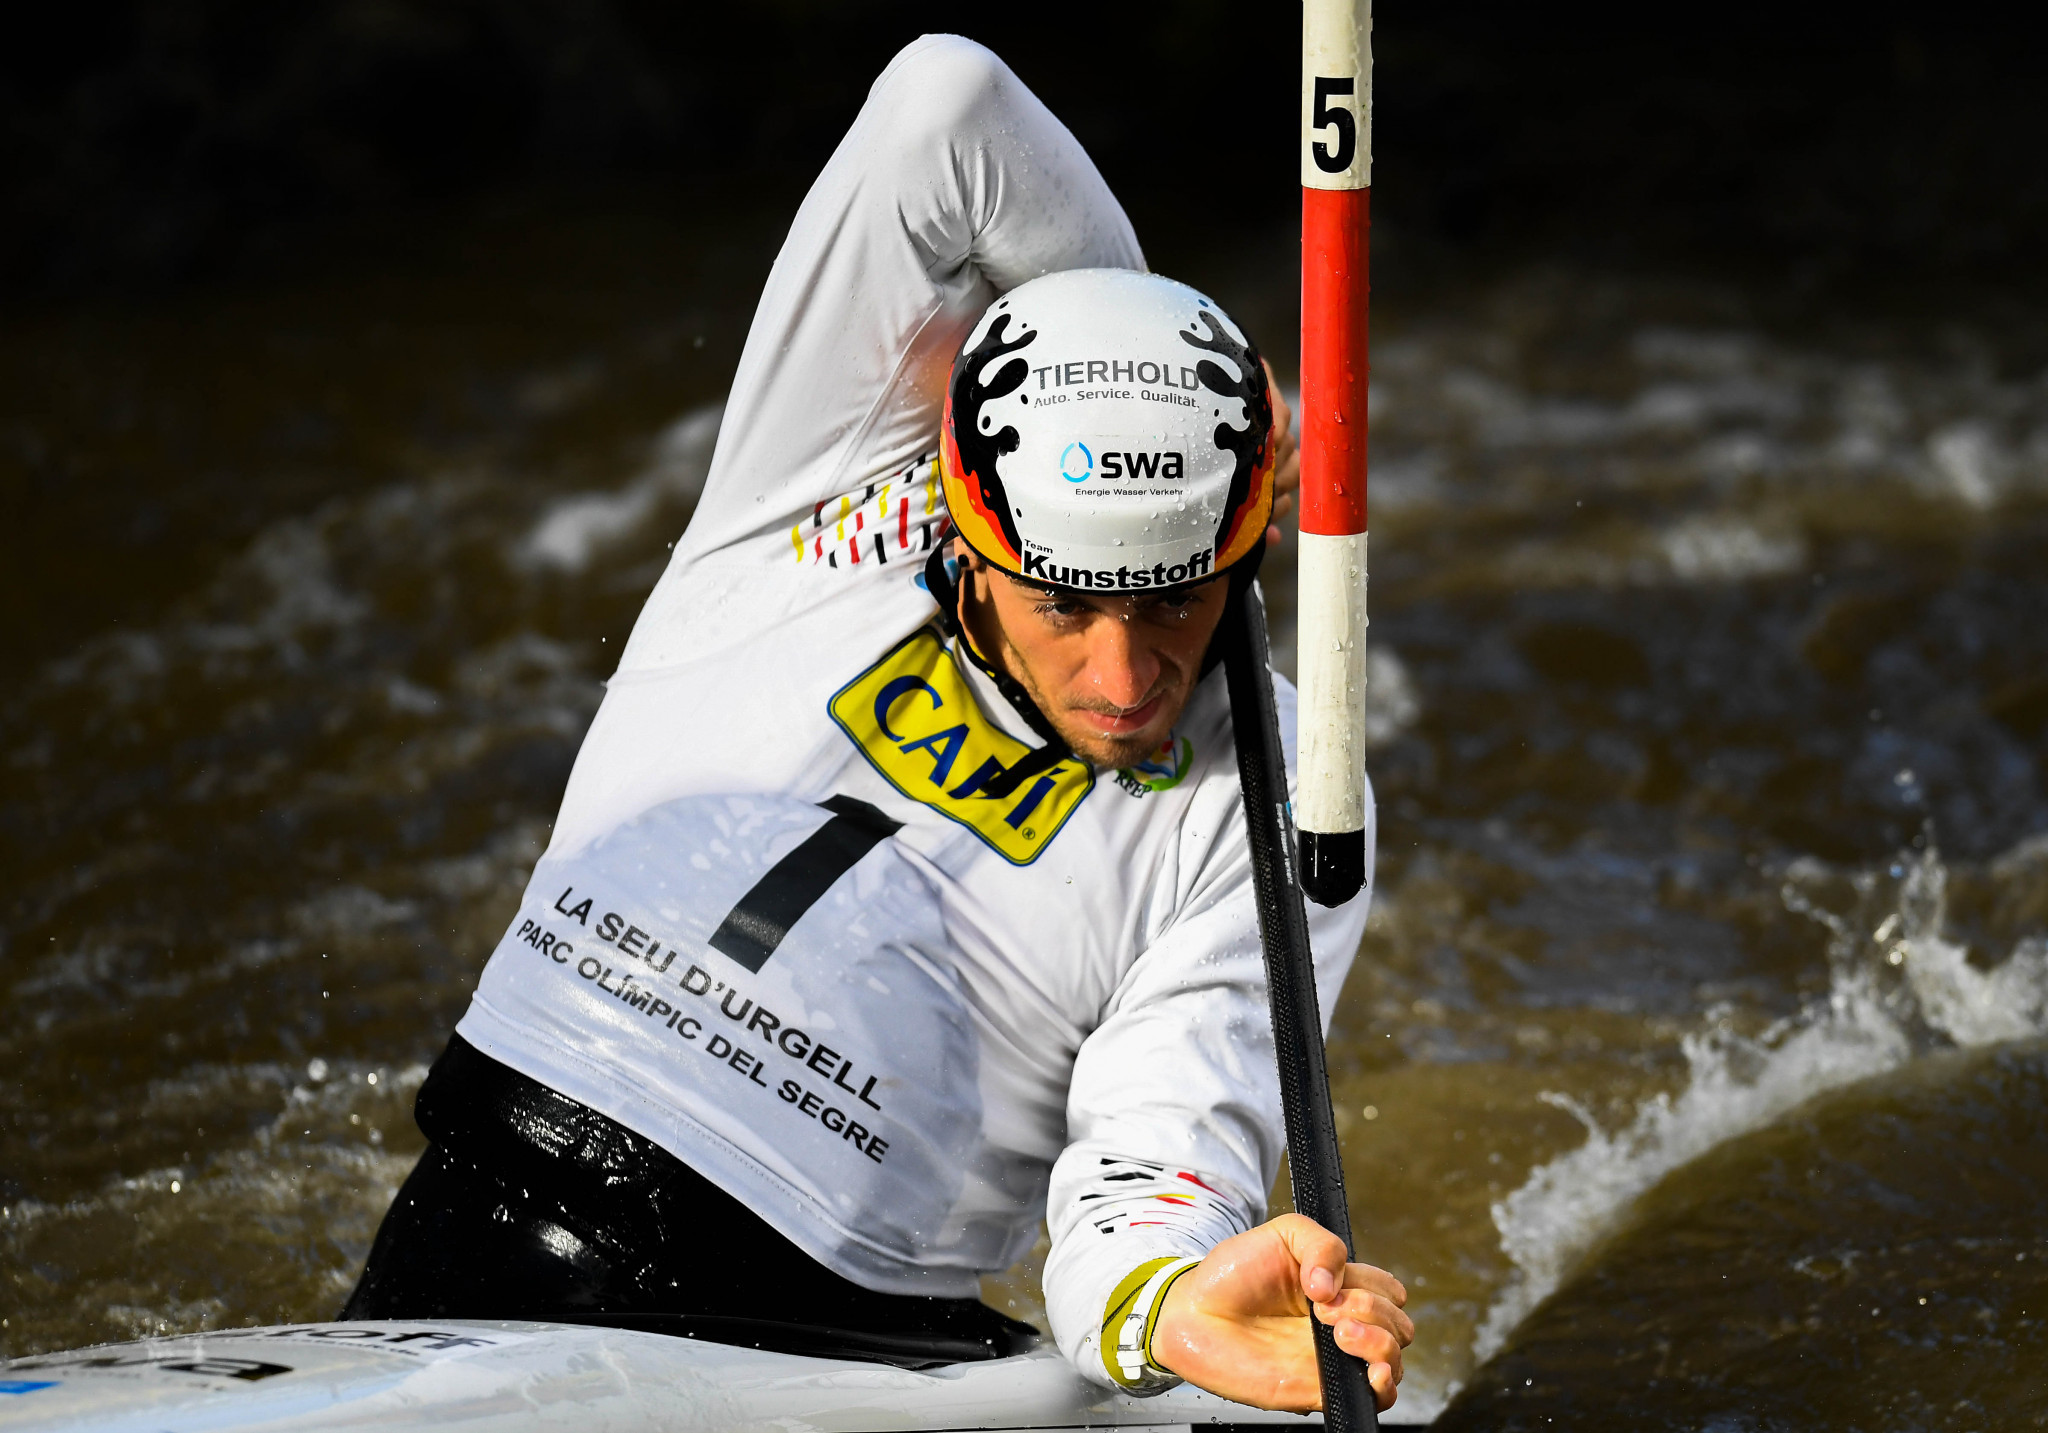 Tasiadis suffers shock men's C1 exit at Canoe Slalom World Championships